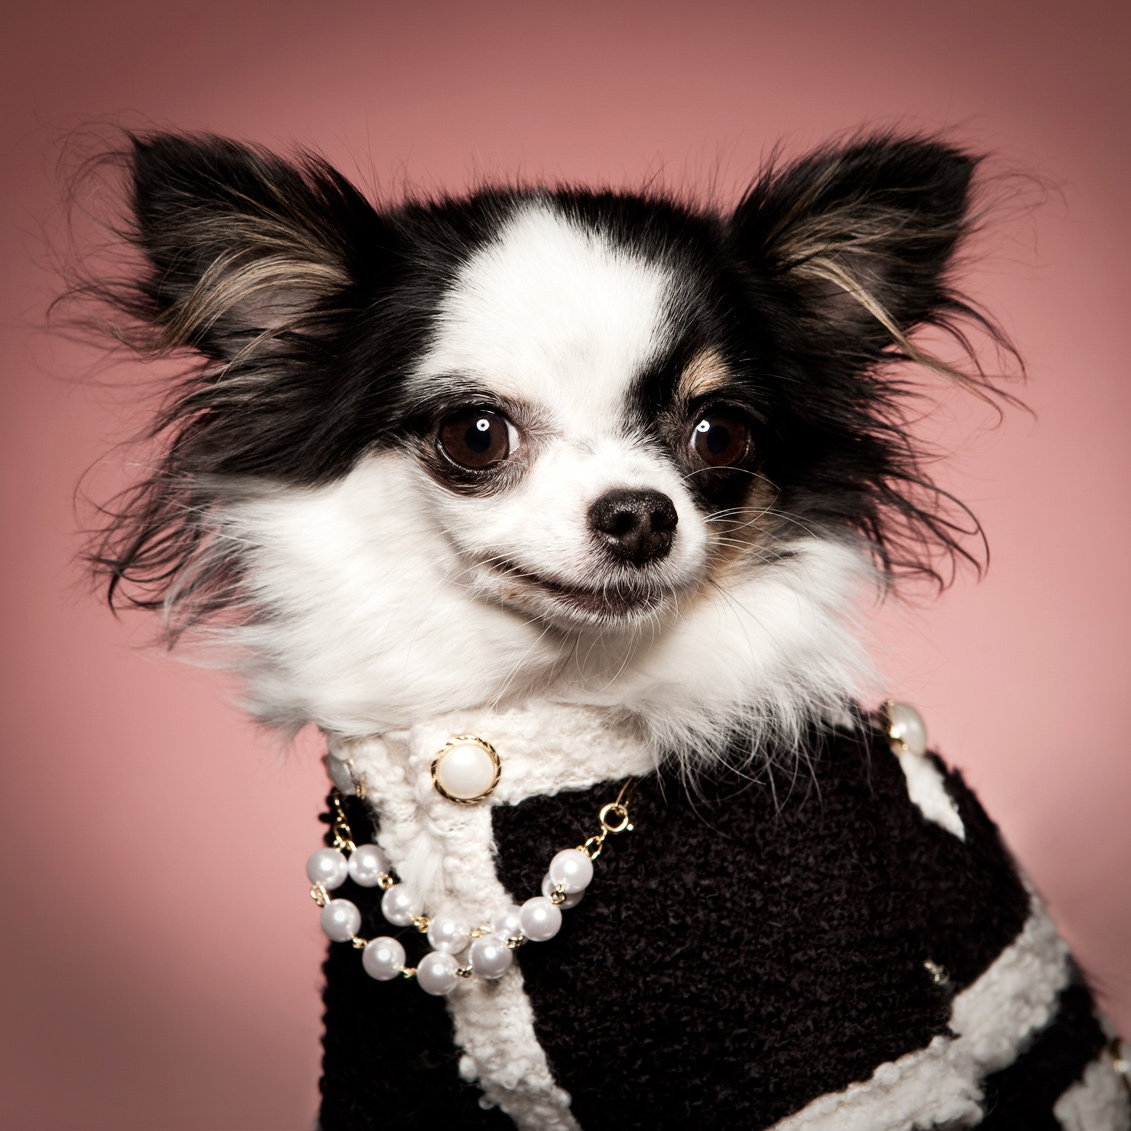 Dog in chanel costume